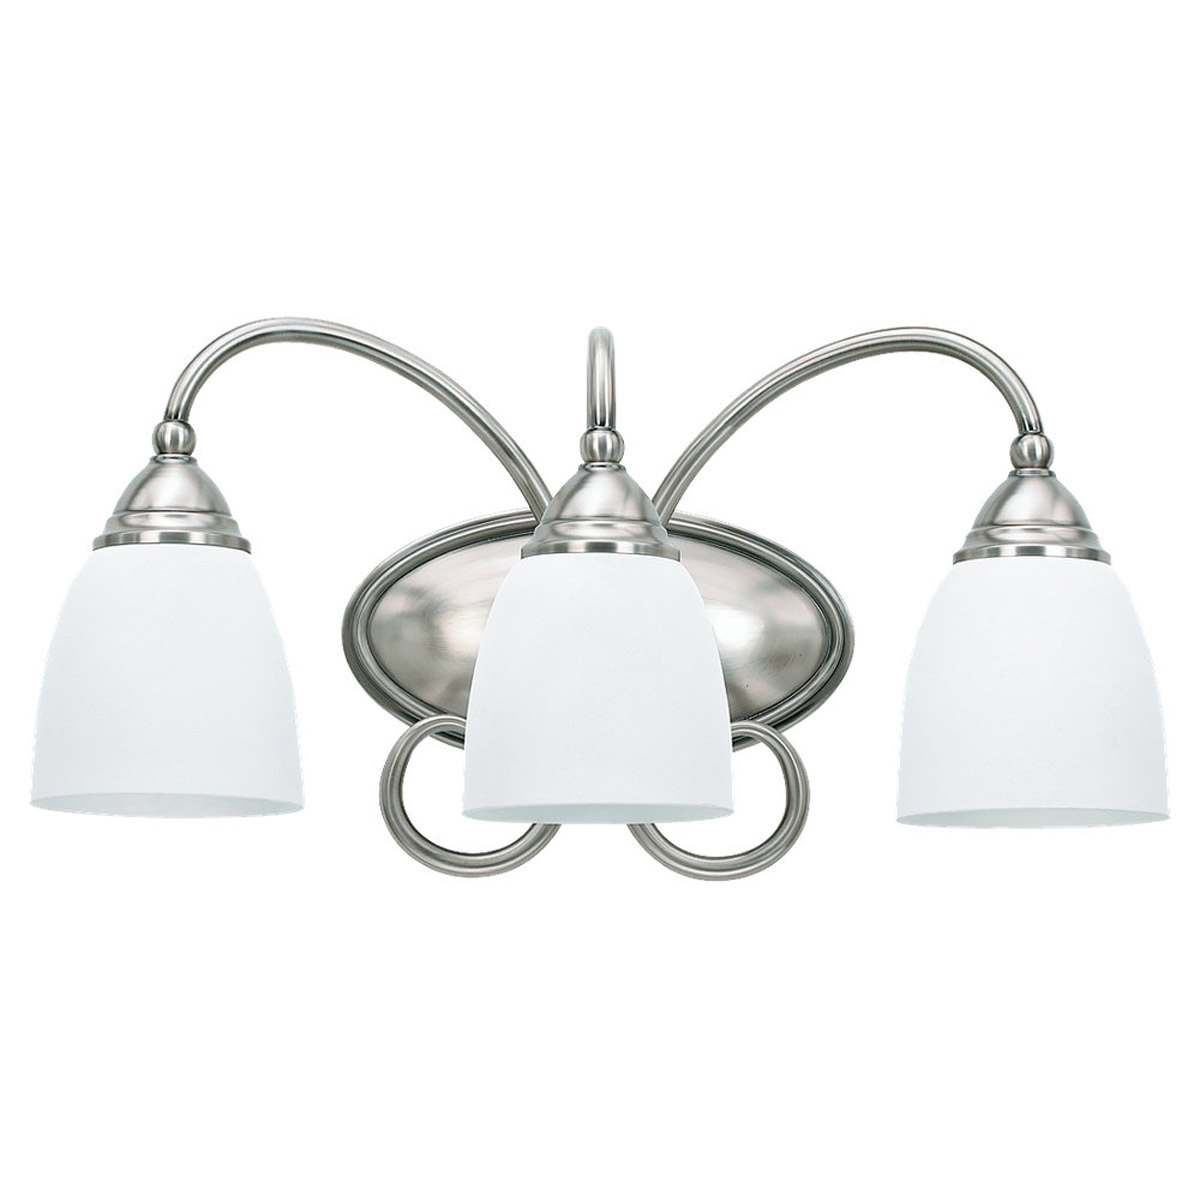 Sea Gull Lighting Montclaire 3 Light Bath Vanity in Antique Brushed Nickel 44106BLE-965 photo